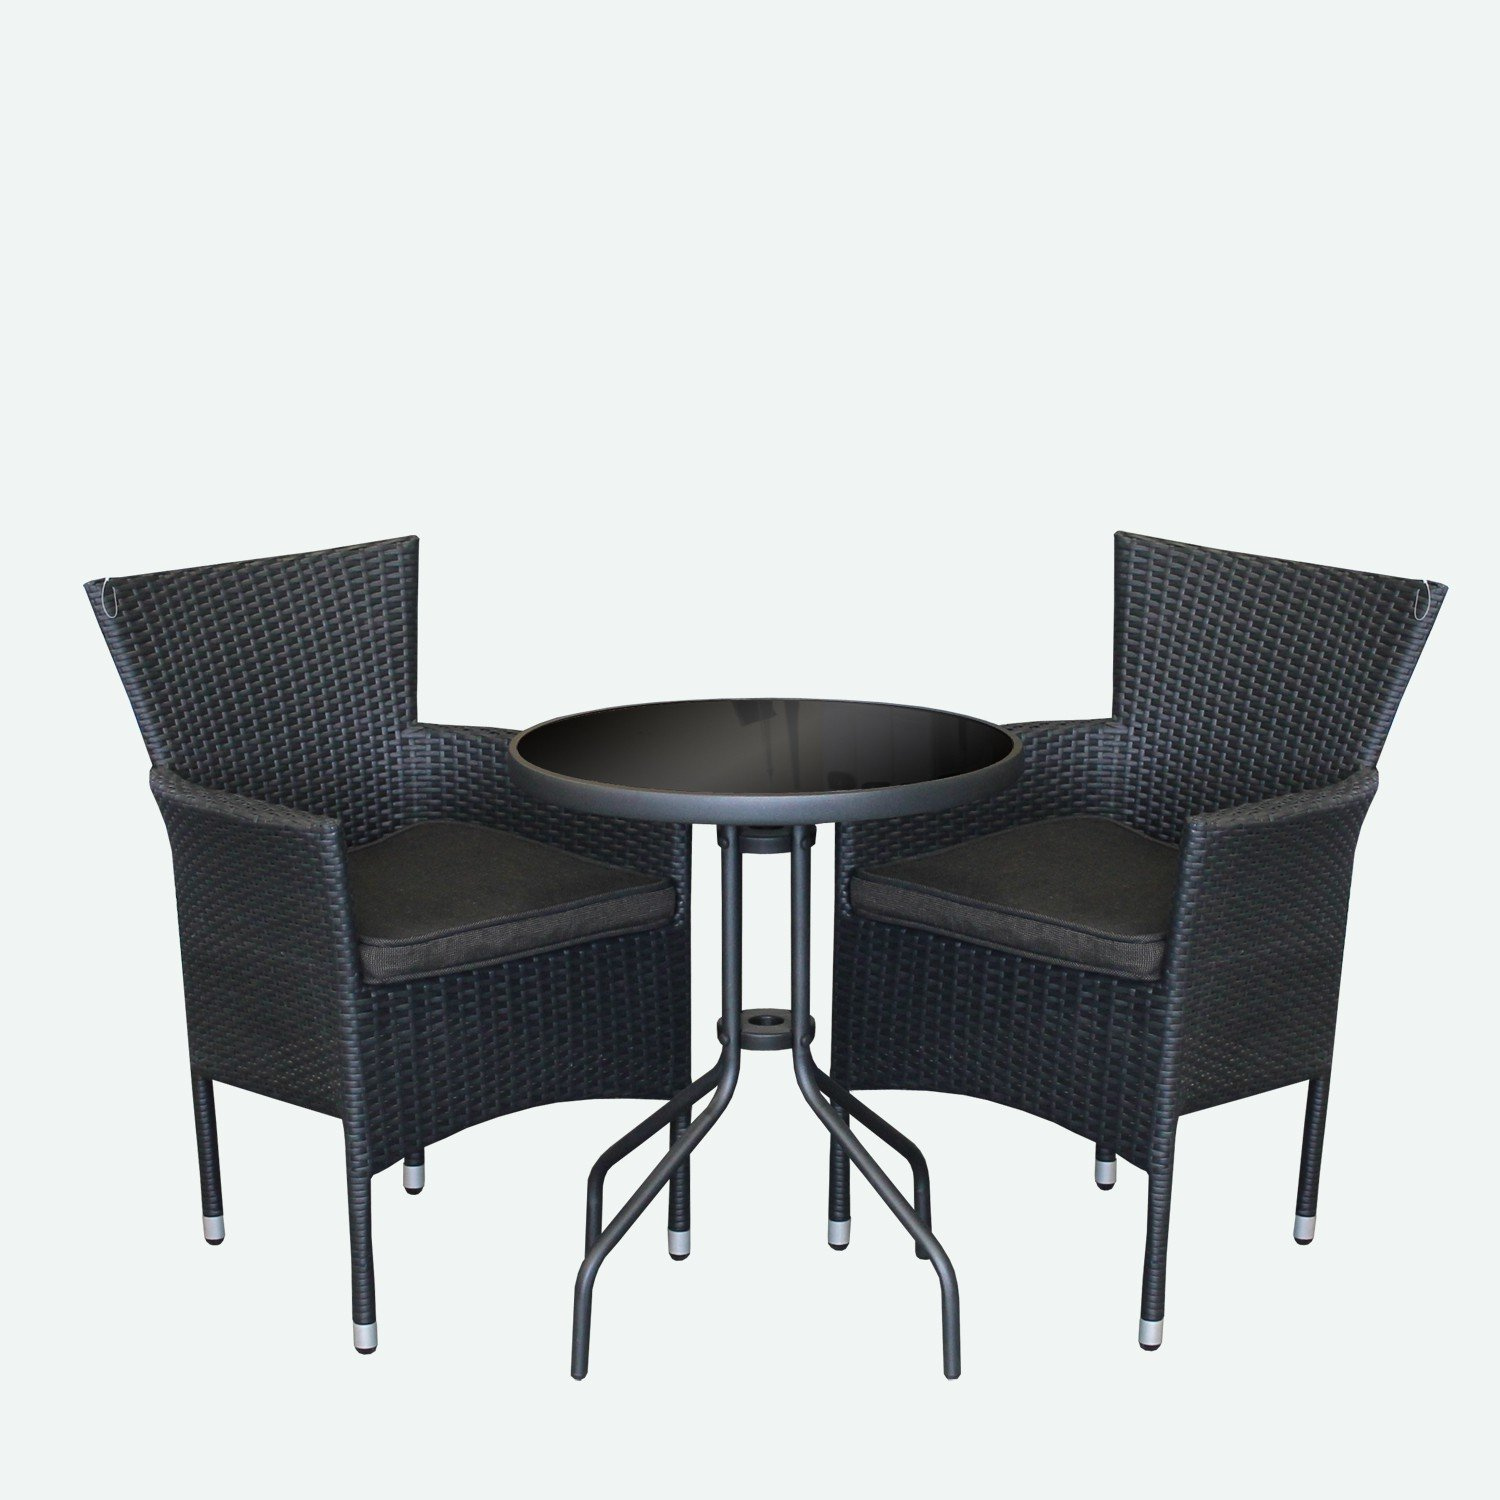 3tlg bistrogarnitur bistro set balkonm bel set bistrotisch glastisch poly rattansessel. Black Bedroom Furniture Sets. Home Design Ideas